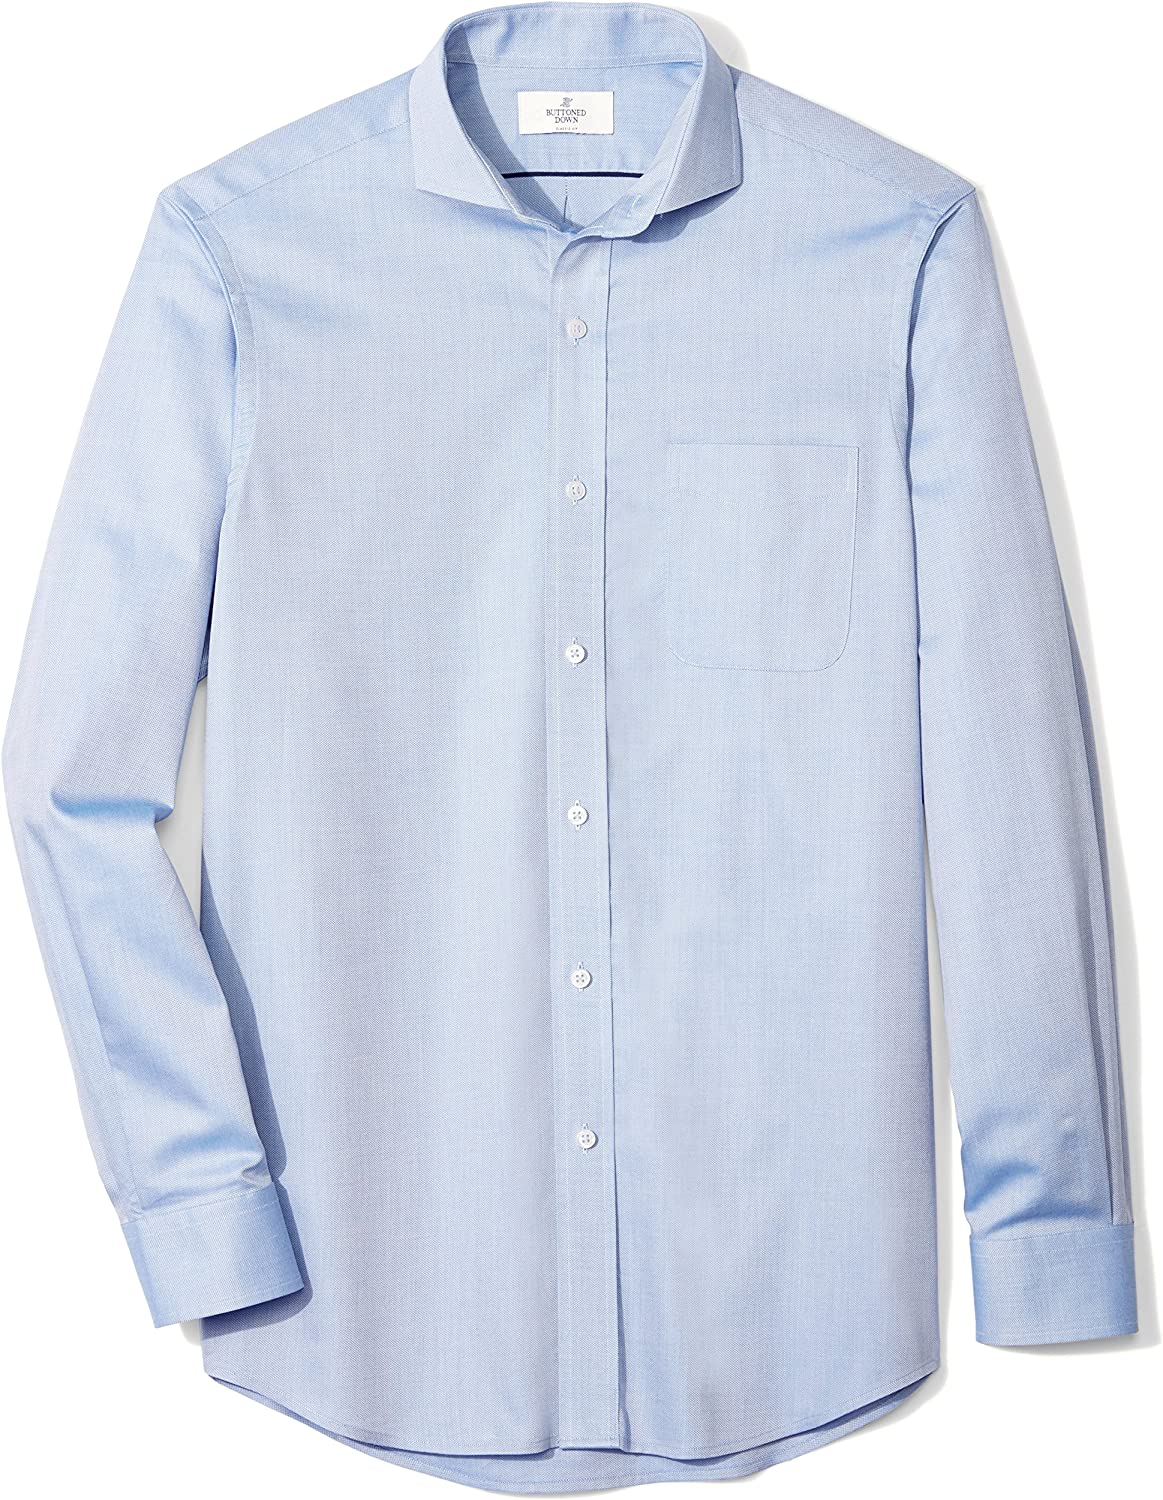 Brand - BUTTONED DOWN Men's Classic Fit Cutaway-Collar Supima Cotton Dress Casual Shirt: Clothing